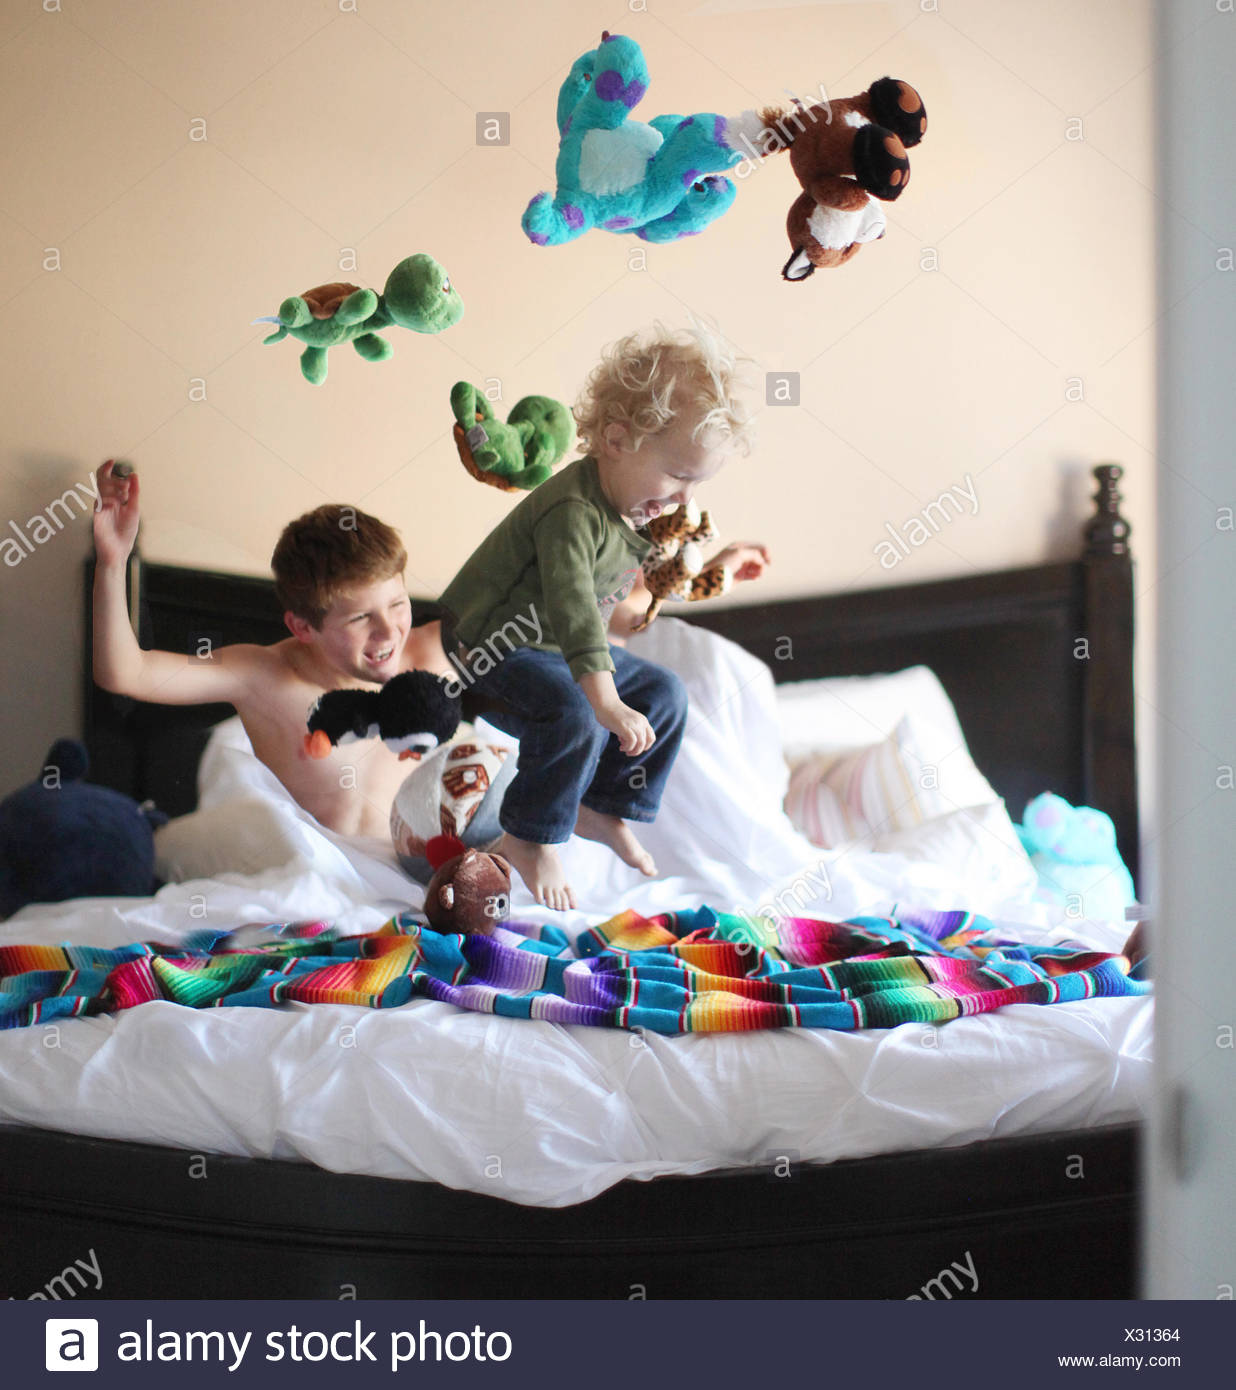 Boy jumping on brothers bed and throwing soft toys in the air - Stock Image